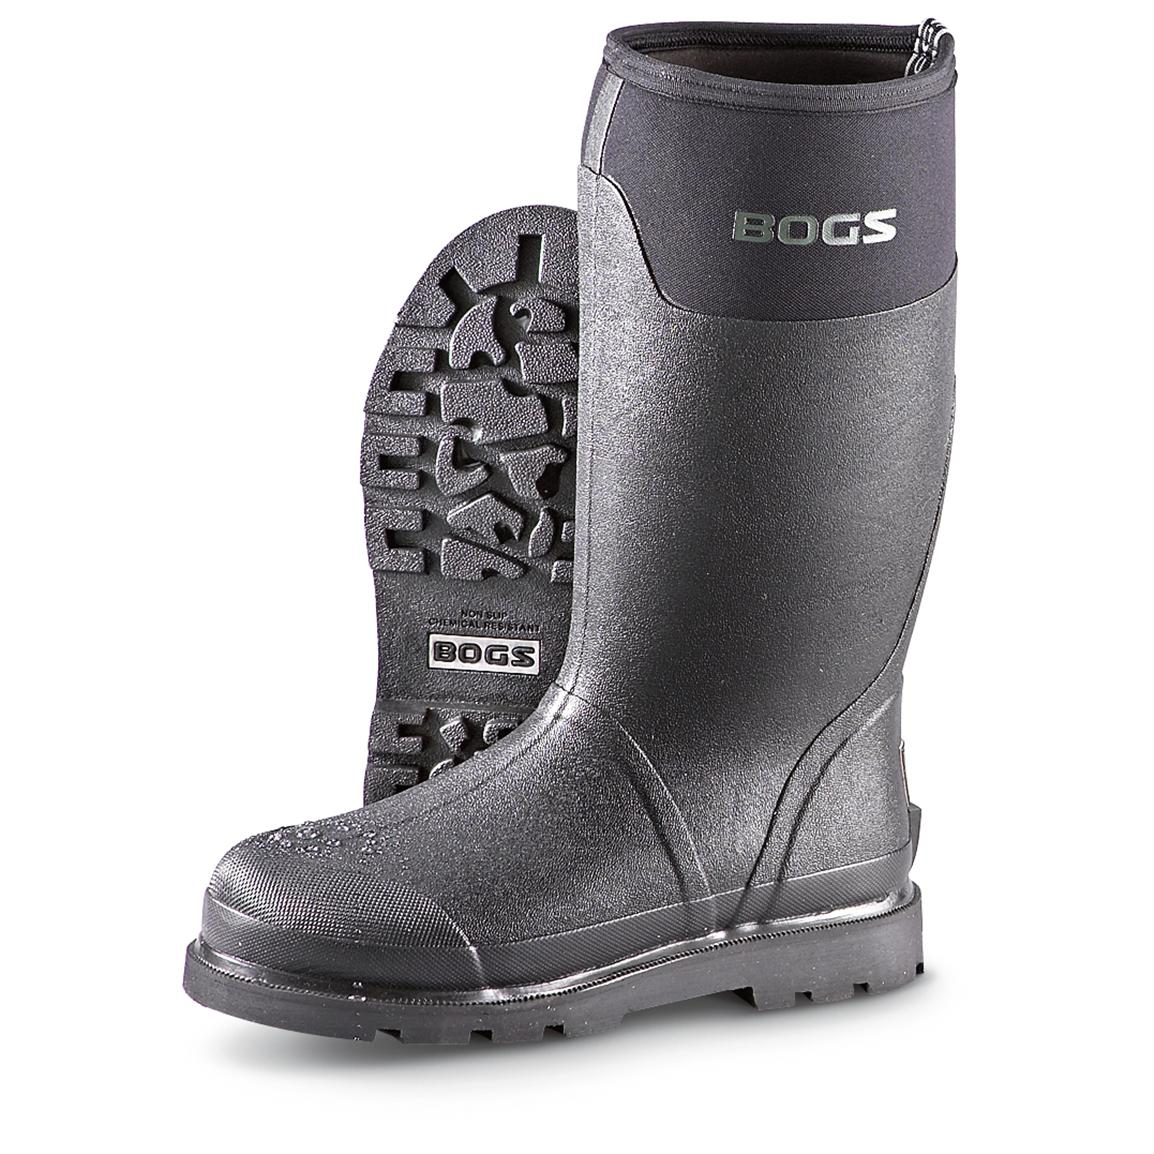 Bogs Footwear Canada Promo Codes. At Bogs, they know that life is a matter of degrees. After more than forty years in the shoe industry, they created Bogs as their solution to the all-weather boot.